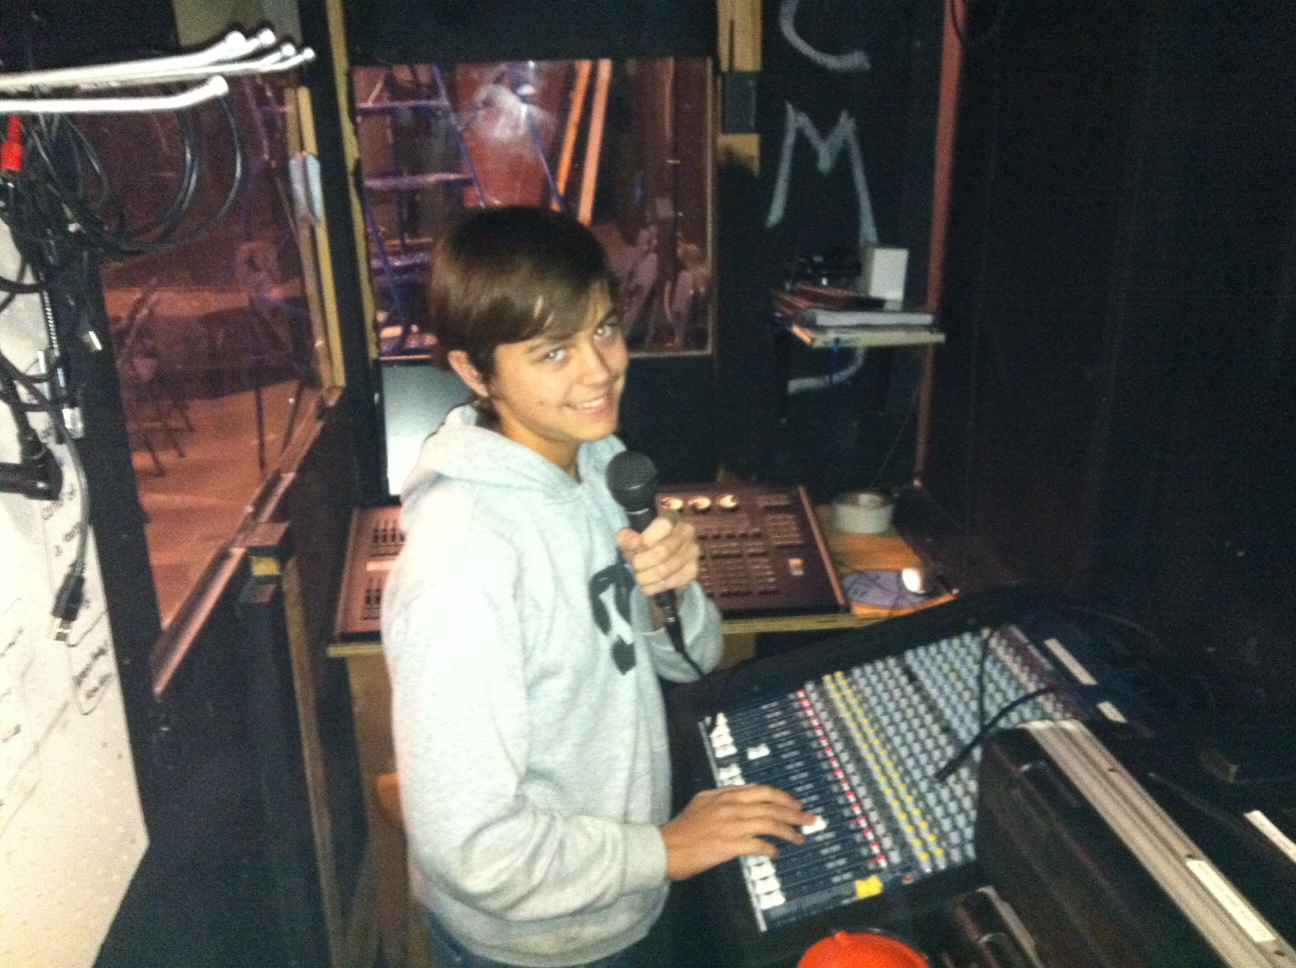 Grossmont HS student monitoring the new sound board during a performance (El Cajon, 2010)